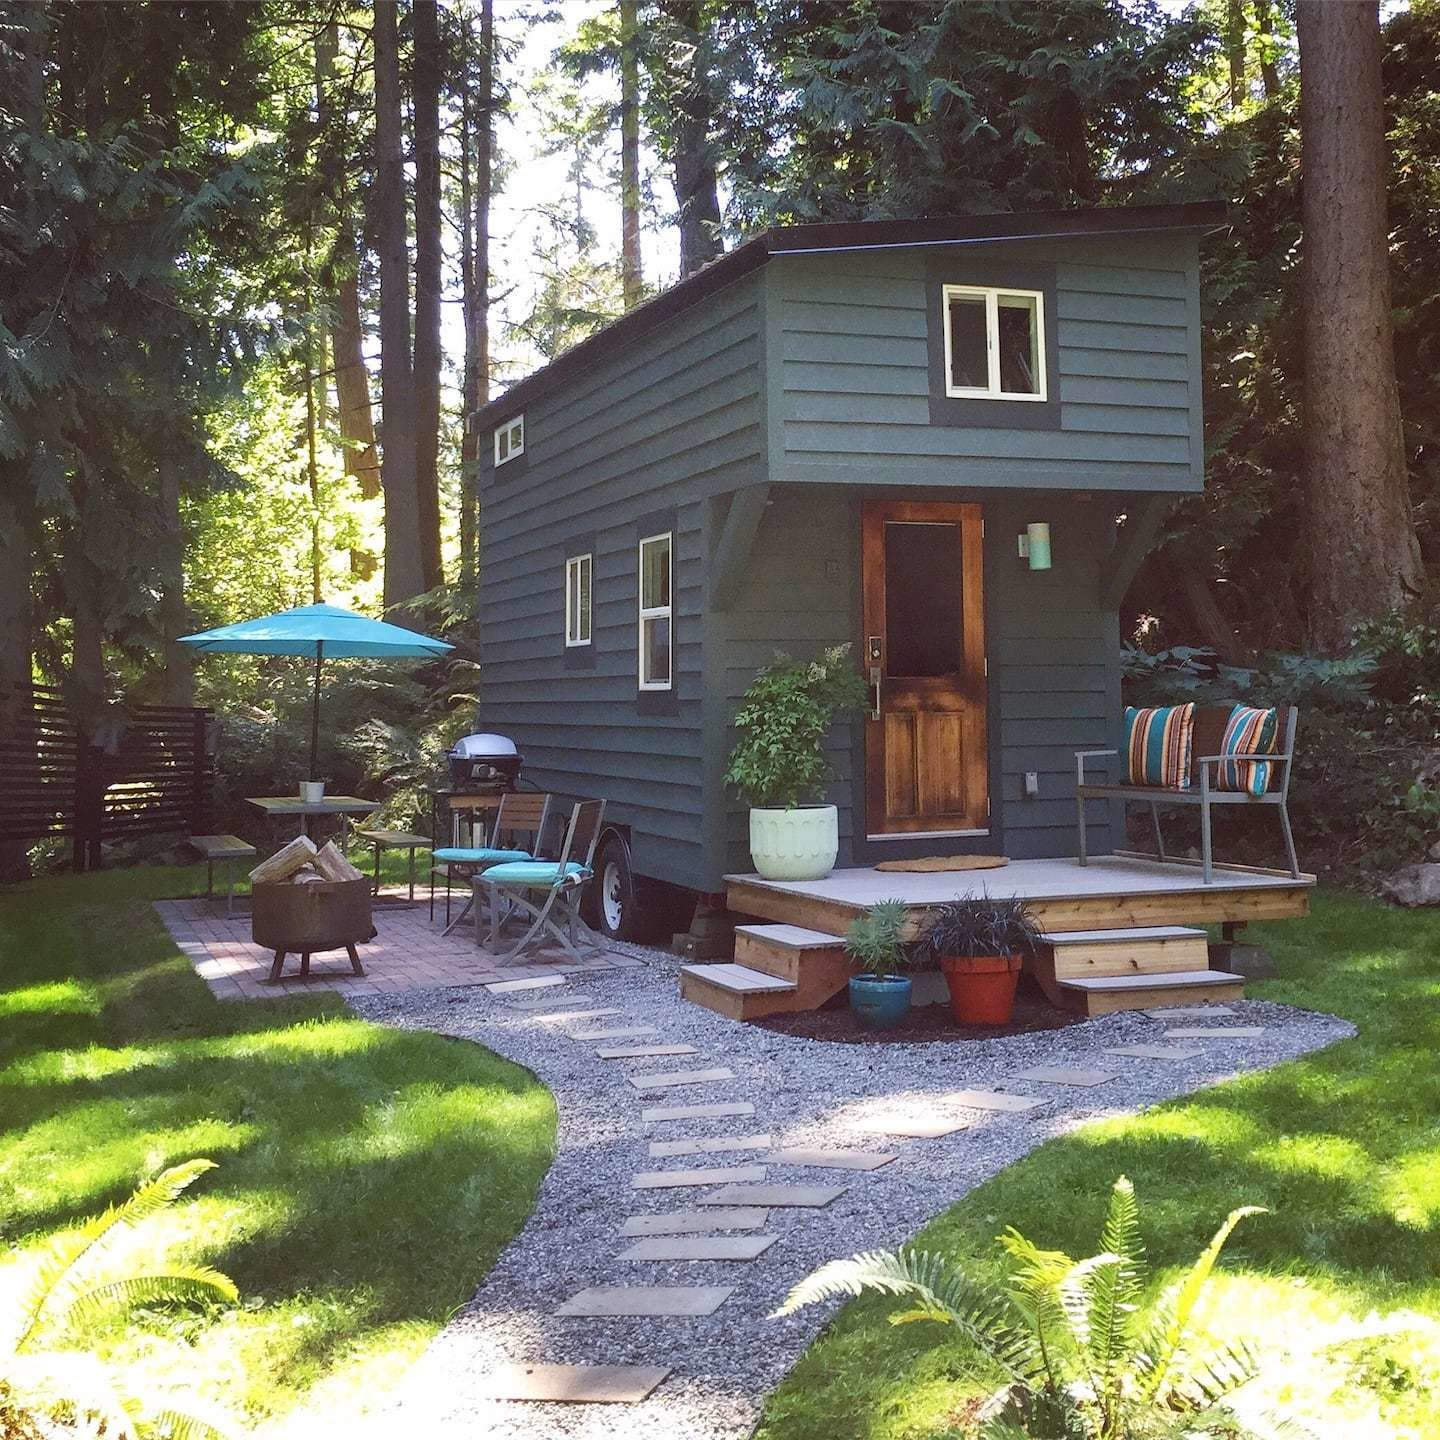 This island tiny home is sided with dark green-painted wood that blends into its wooded natural surround.  Photo 8 of 24 in Check Out These 23 Tiny Houses Perfect for an Autumn Getaway